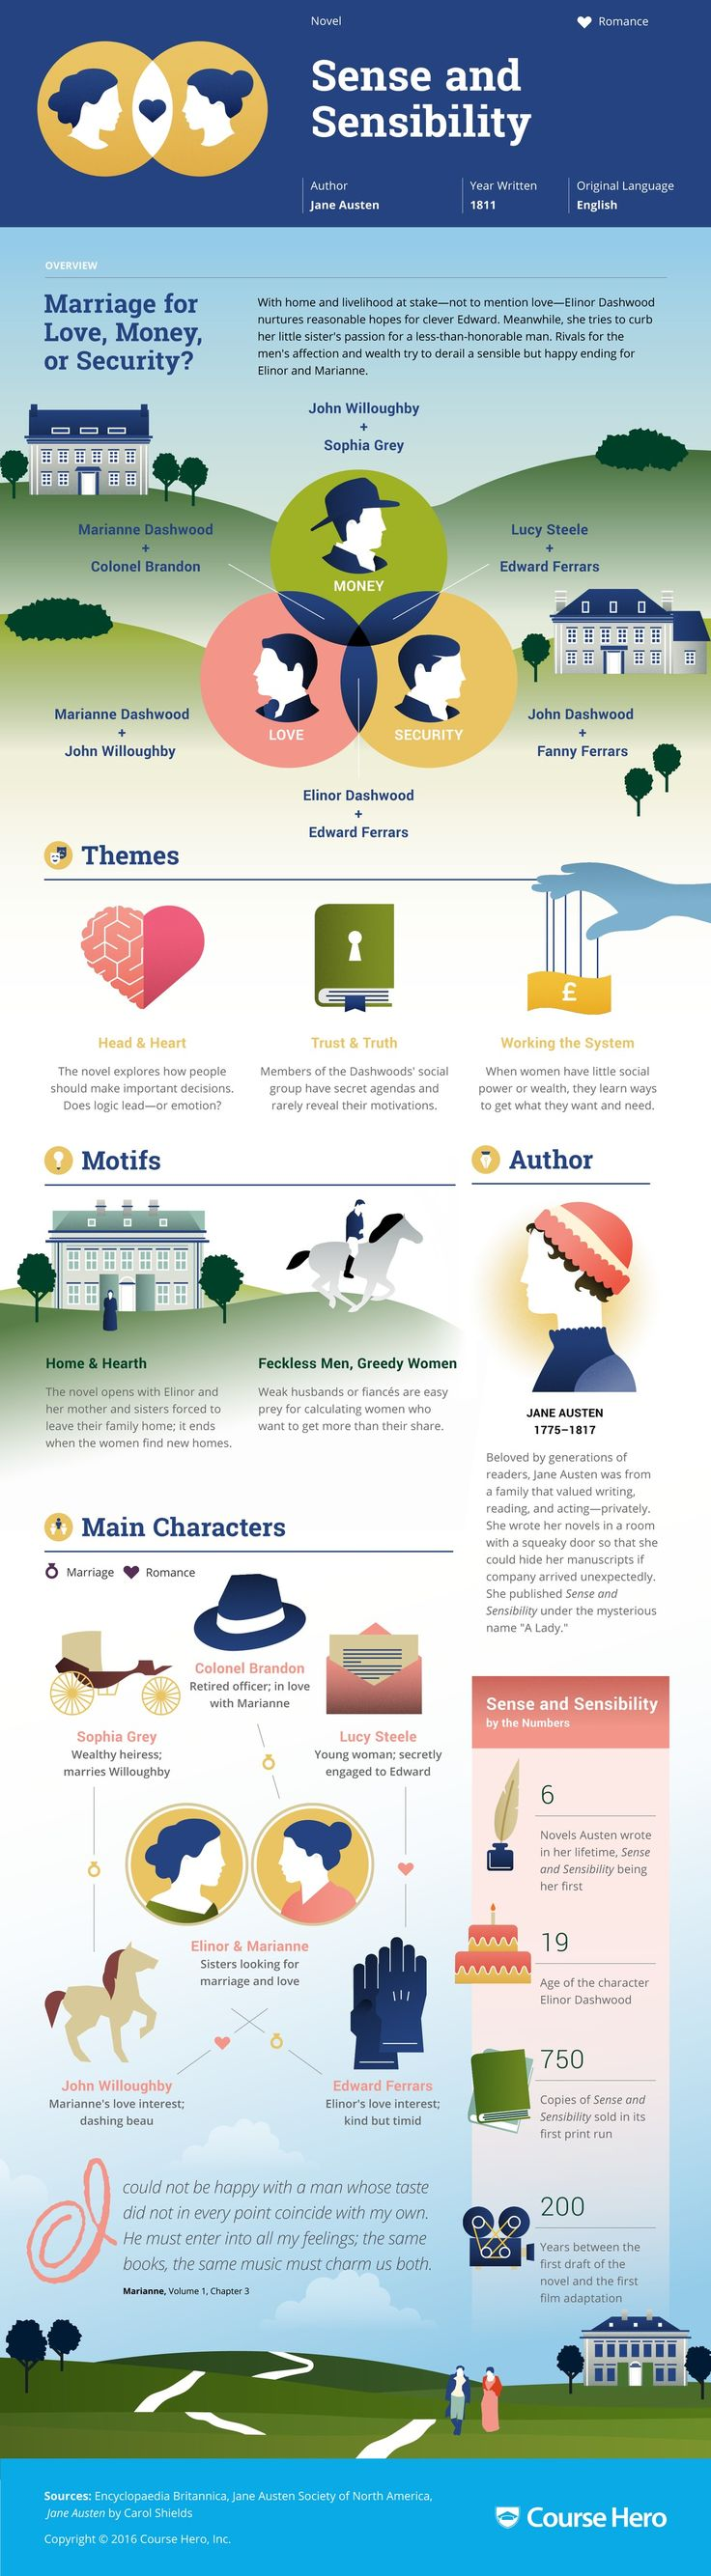 Sense and Sensibility Infographic | Course Hero